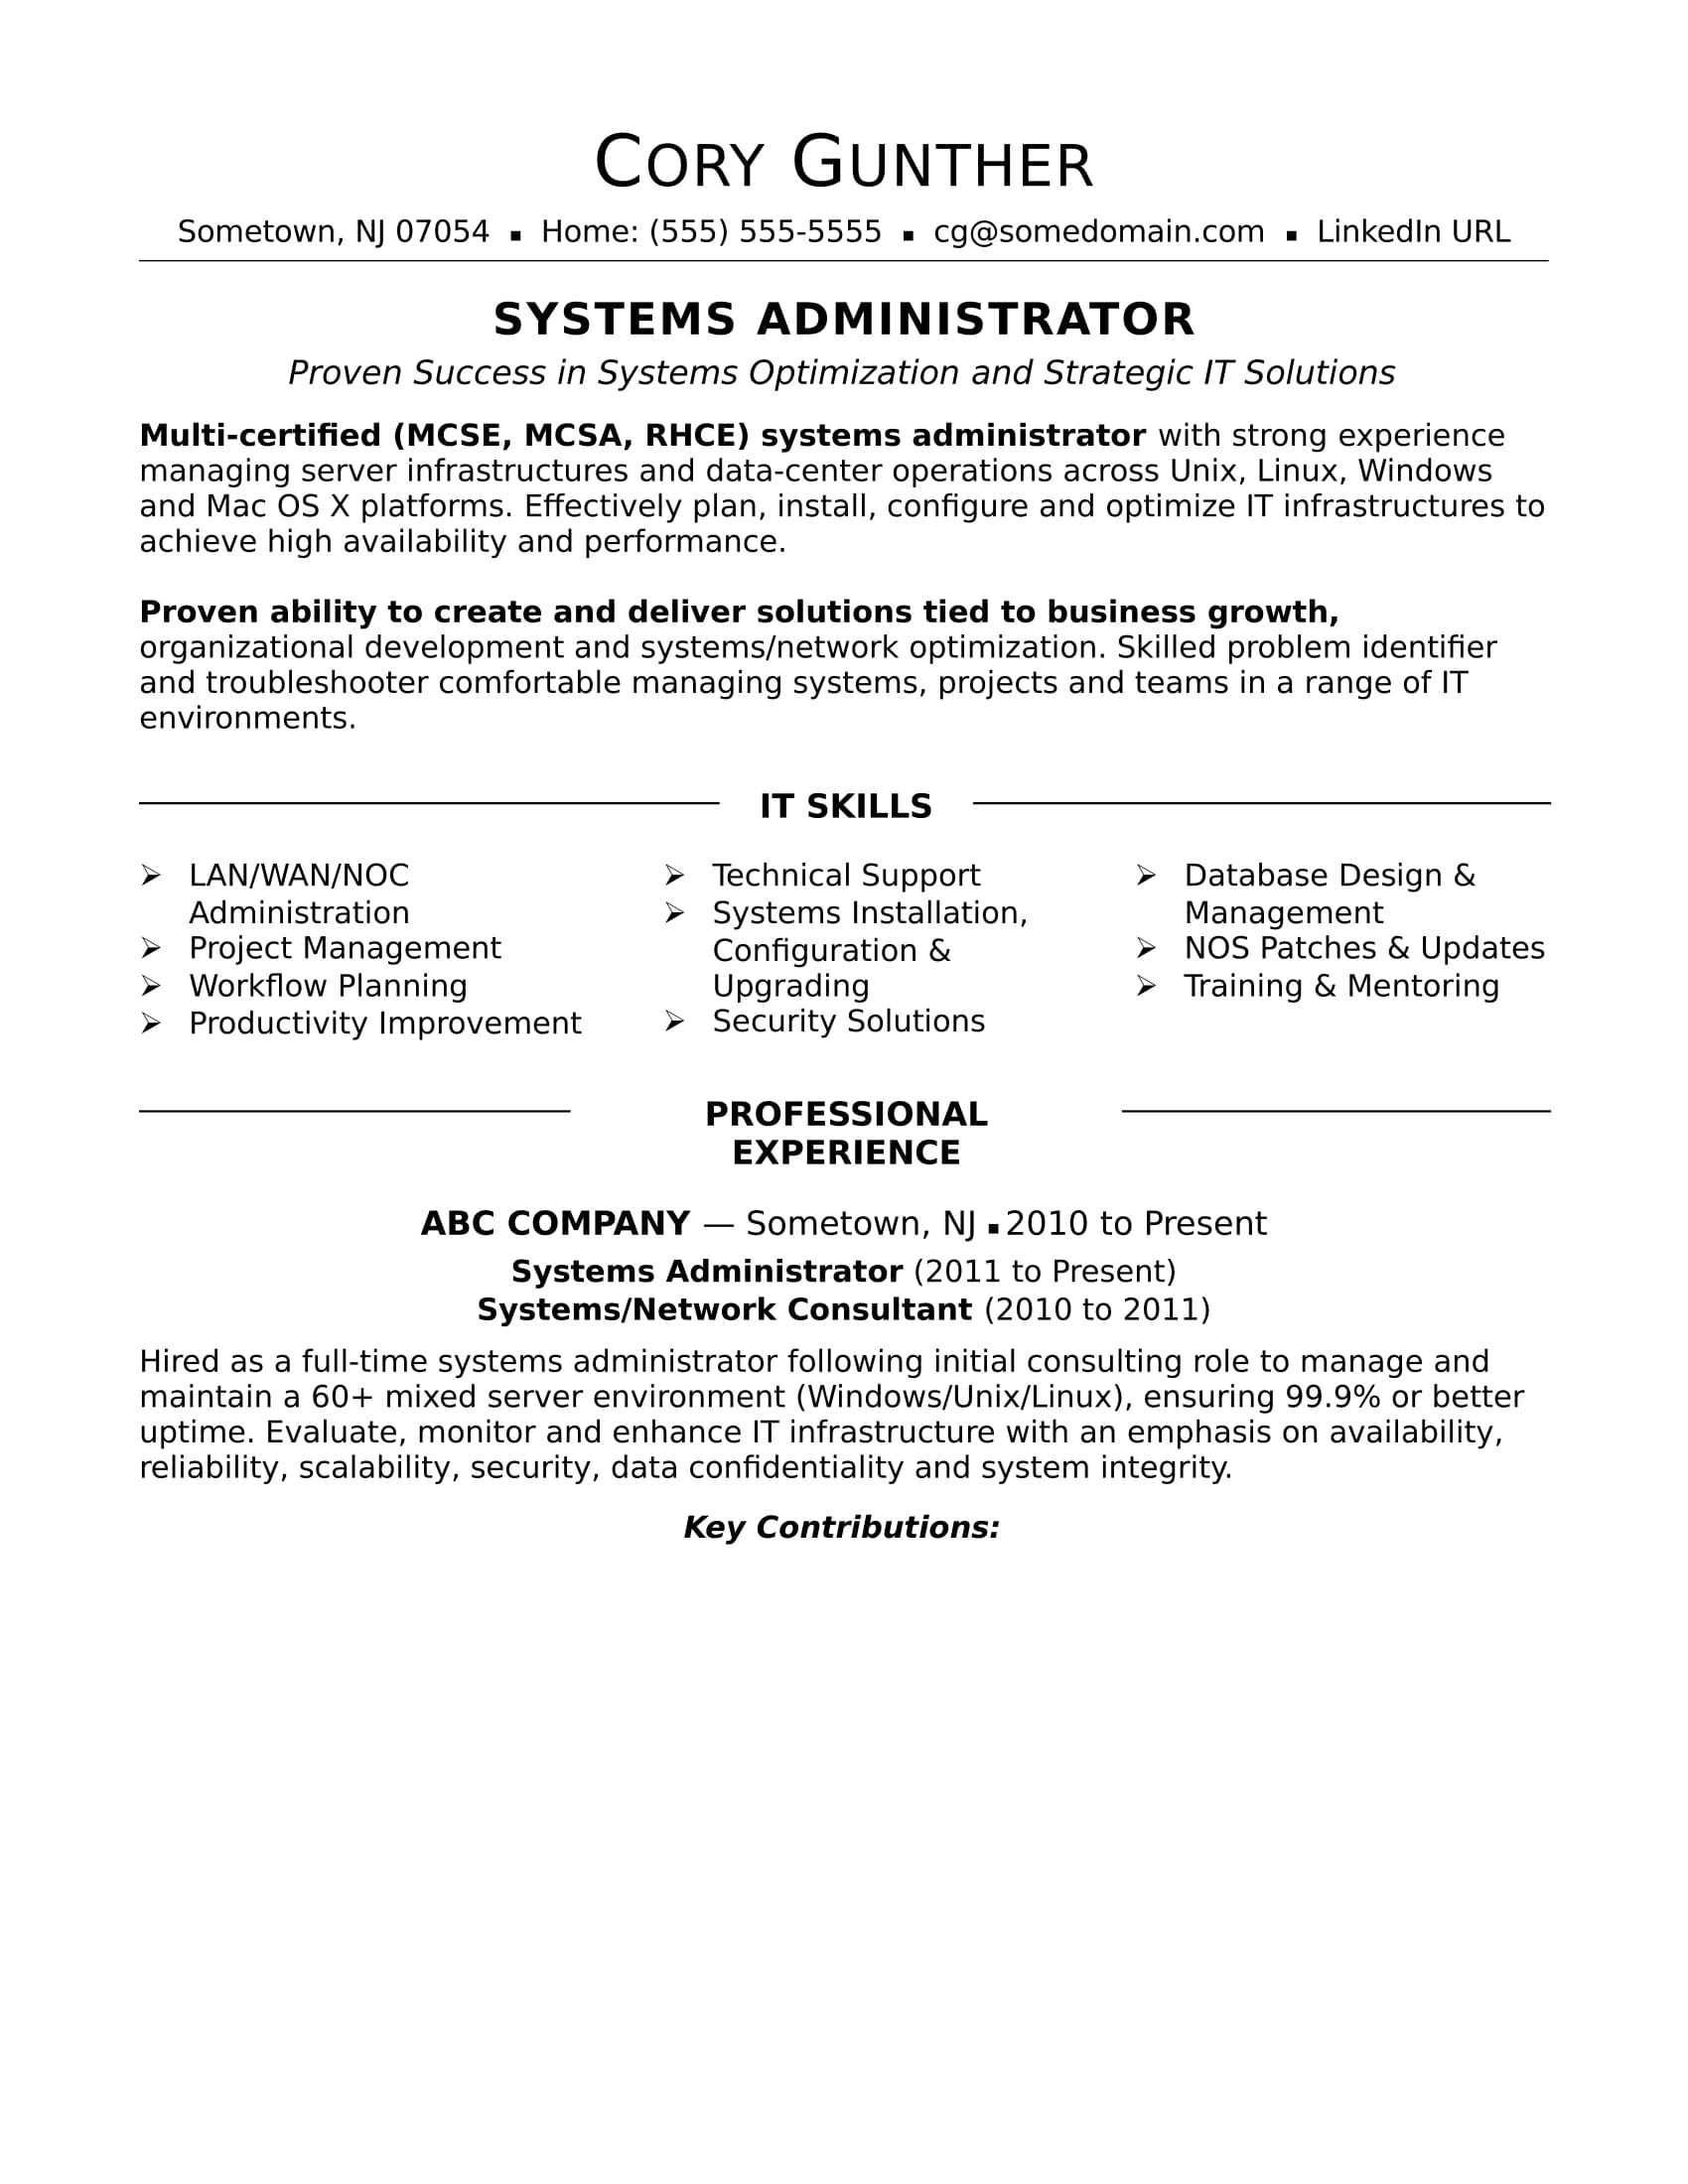 sample resume for an experienced systems administrator monster vmware responsibilities Resume Vmware Administrator Resume Responsibilities